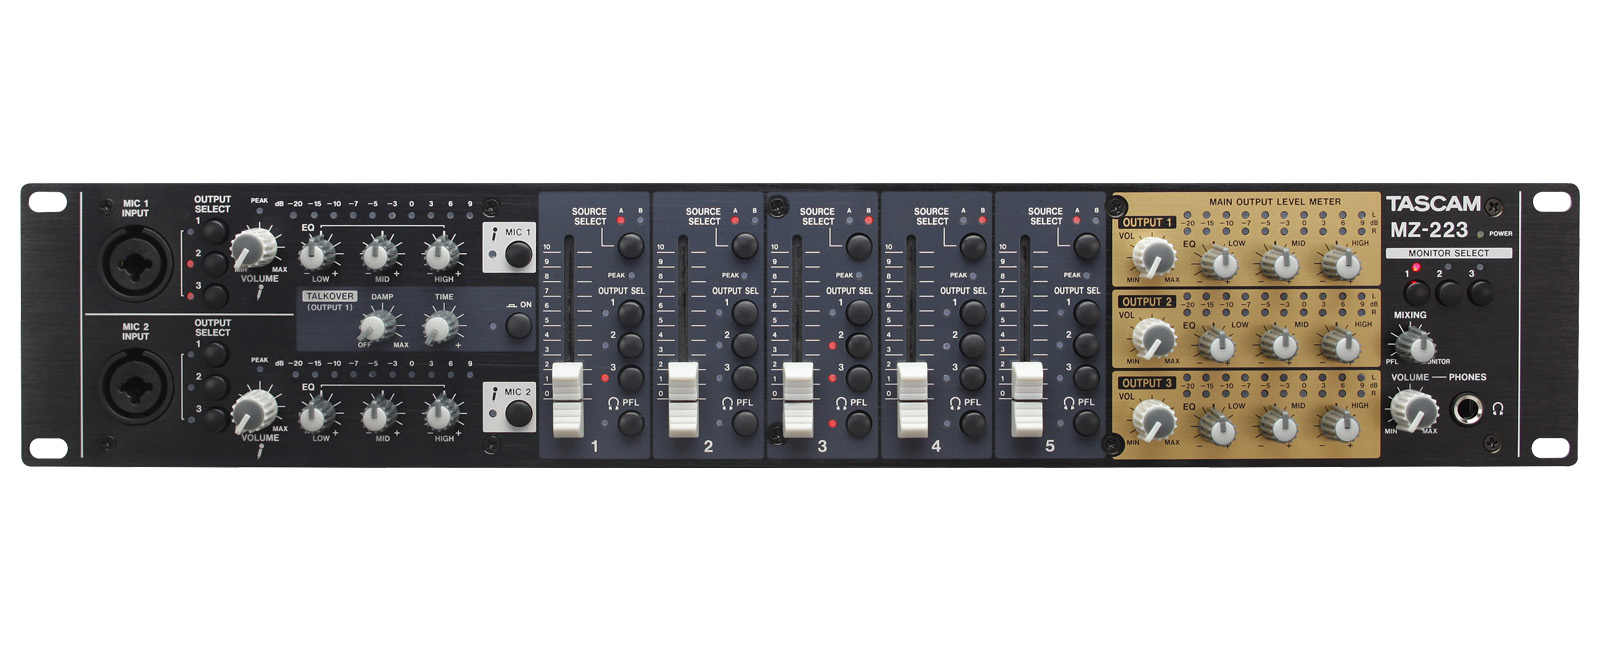 MZ-223 | OVERVIEW | TASCAM - United States